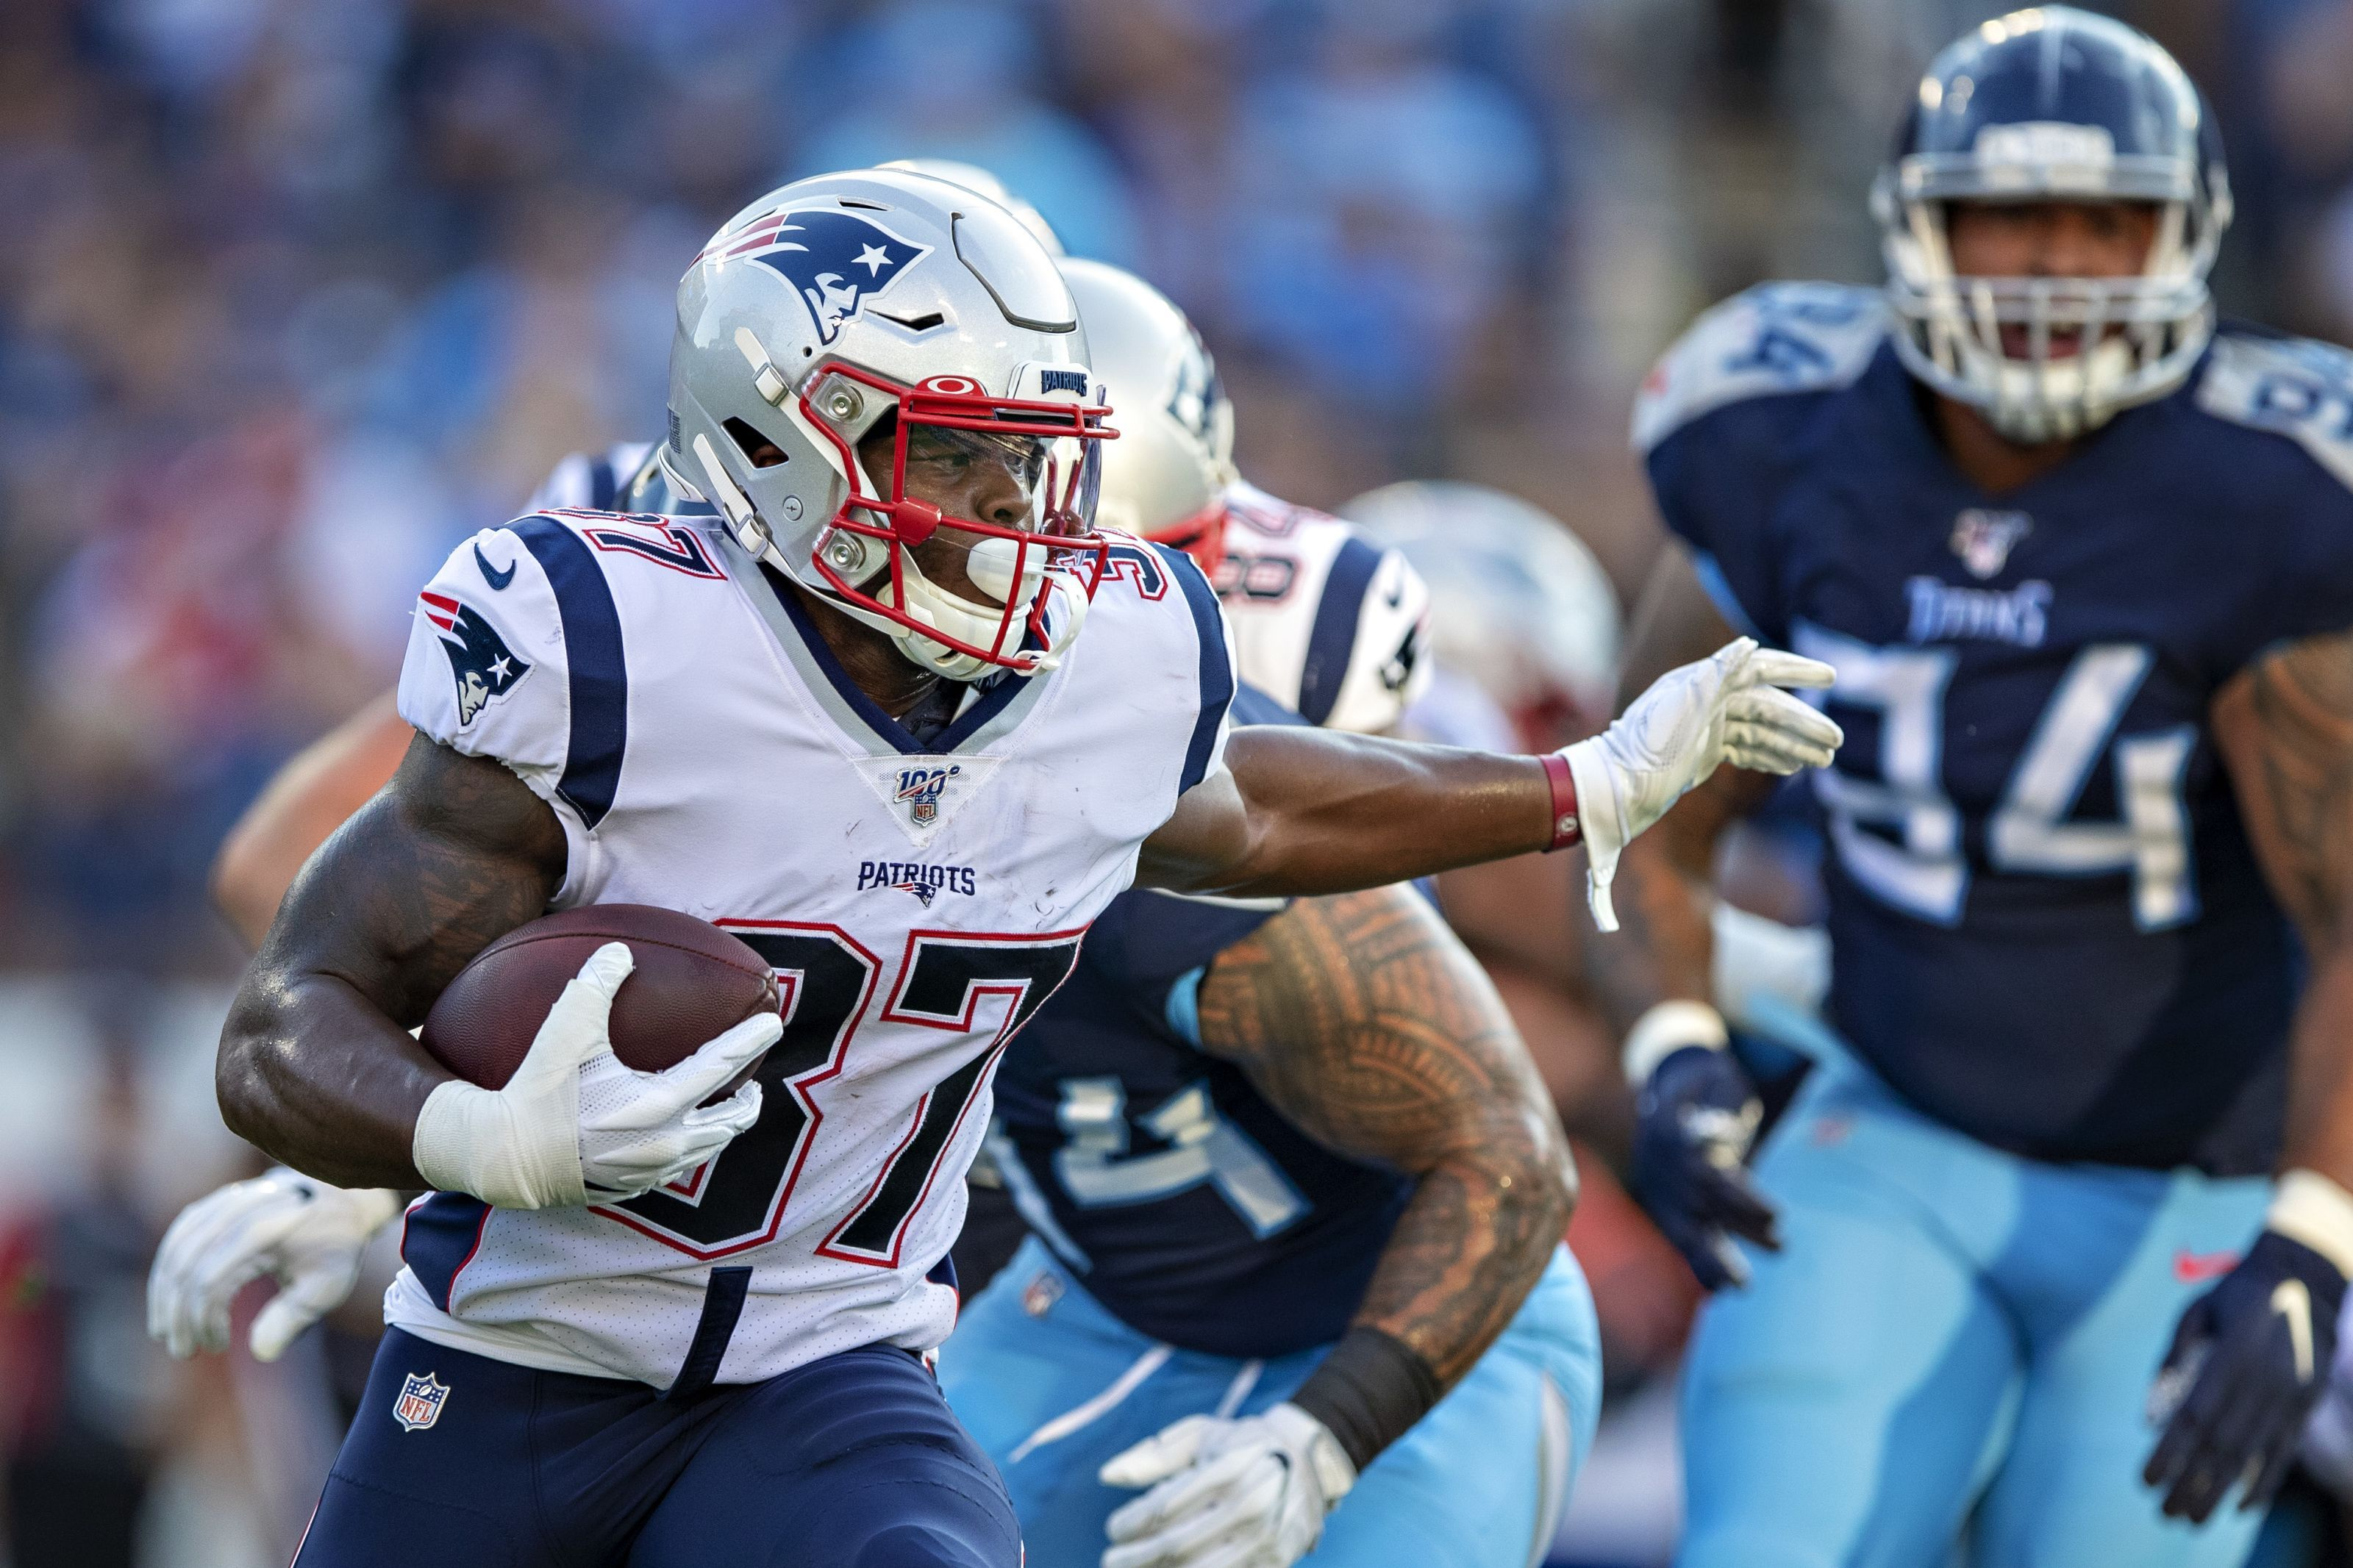 Why Haven T The New England Patriots Used Damien Harris Yet National Football League News Tennessee Titans Nfl News Nfl Preseason